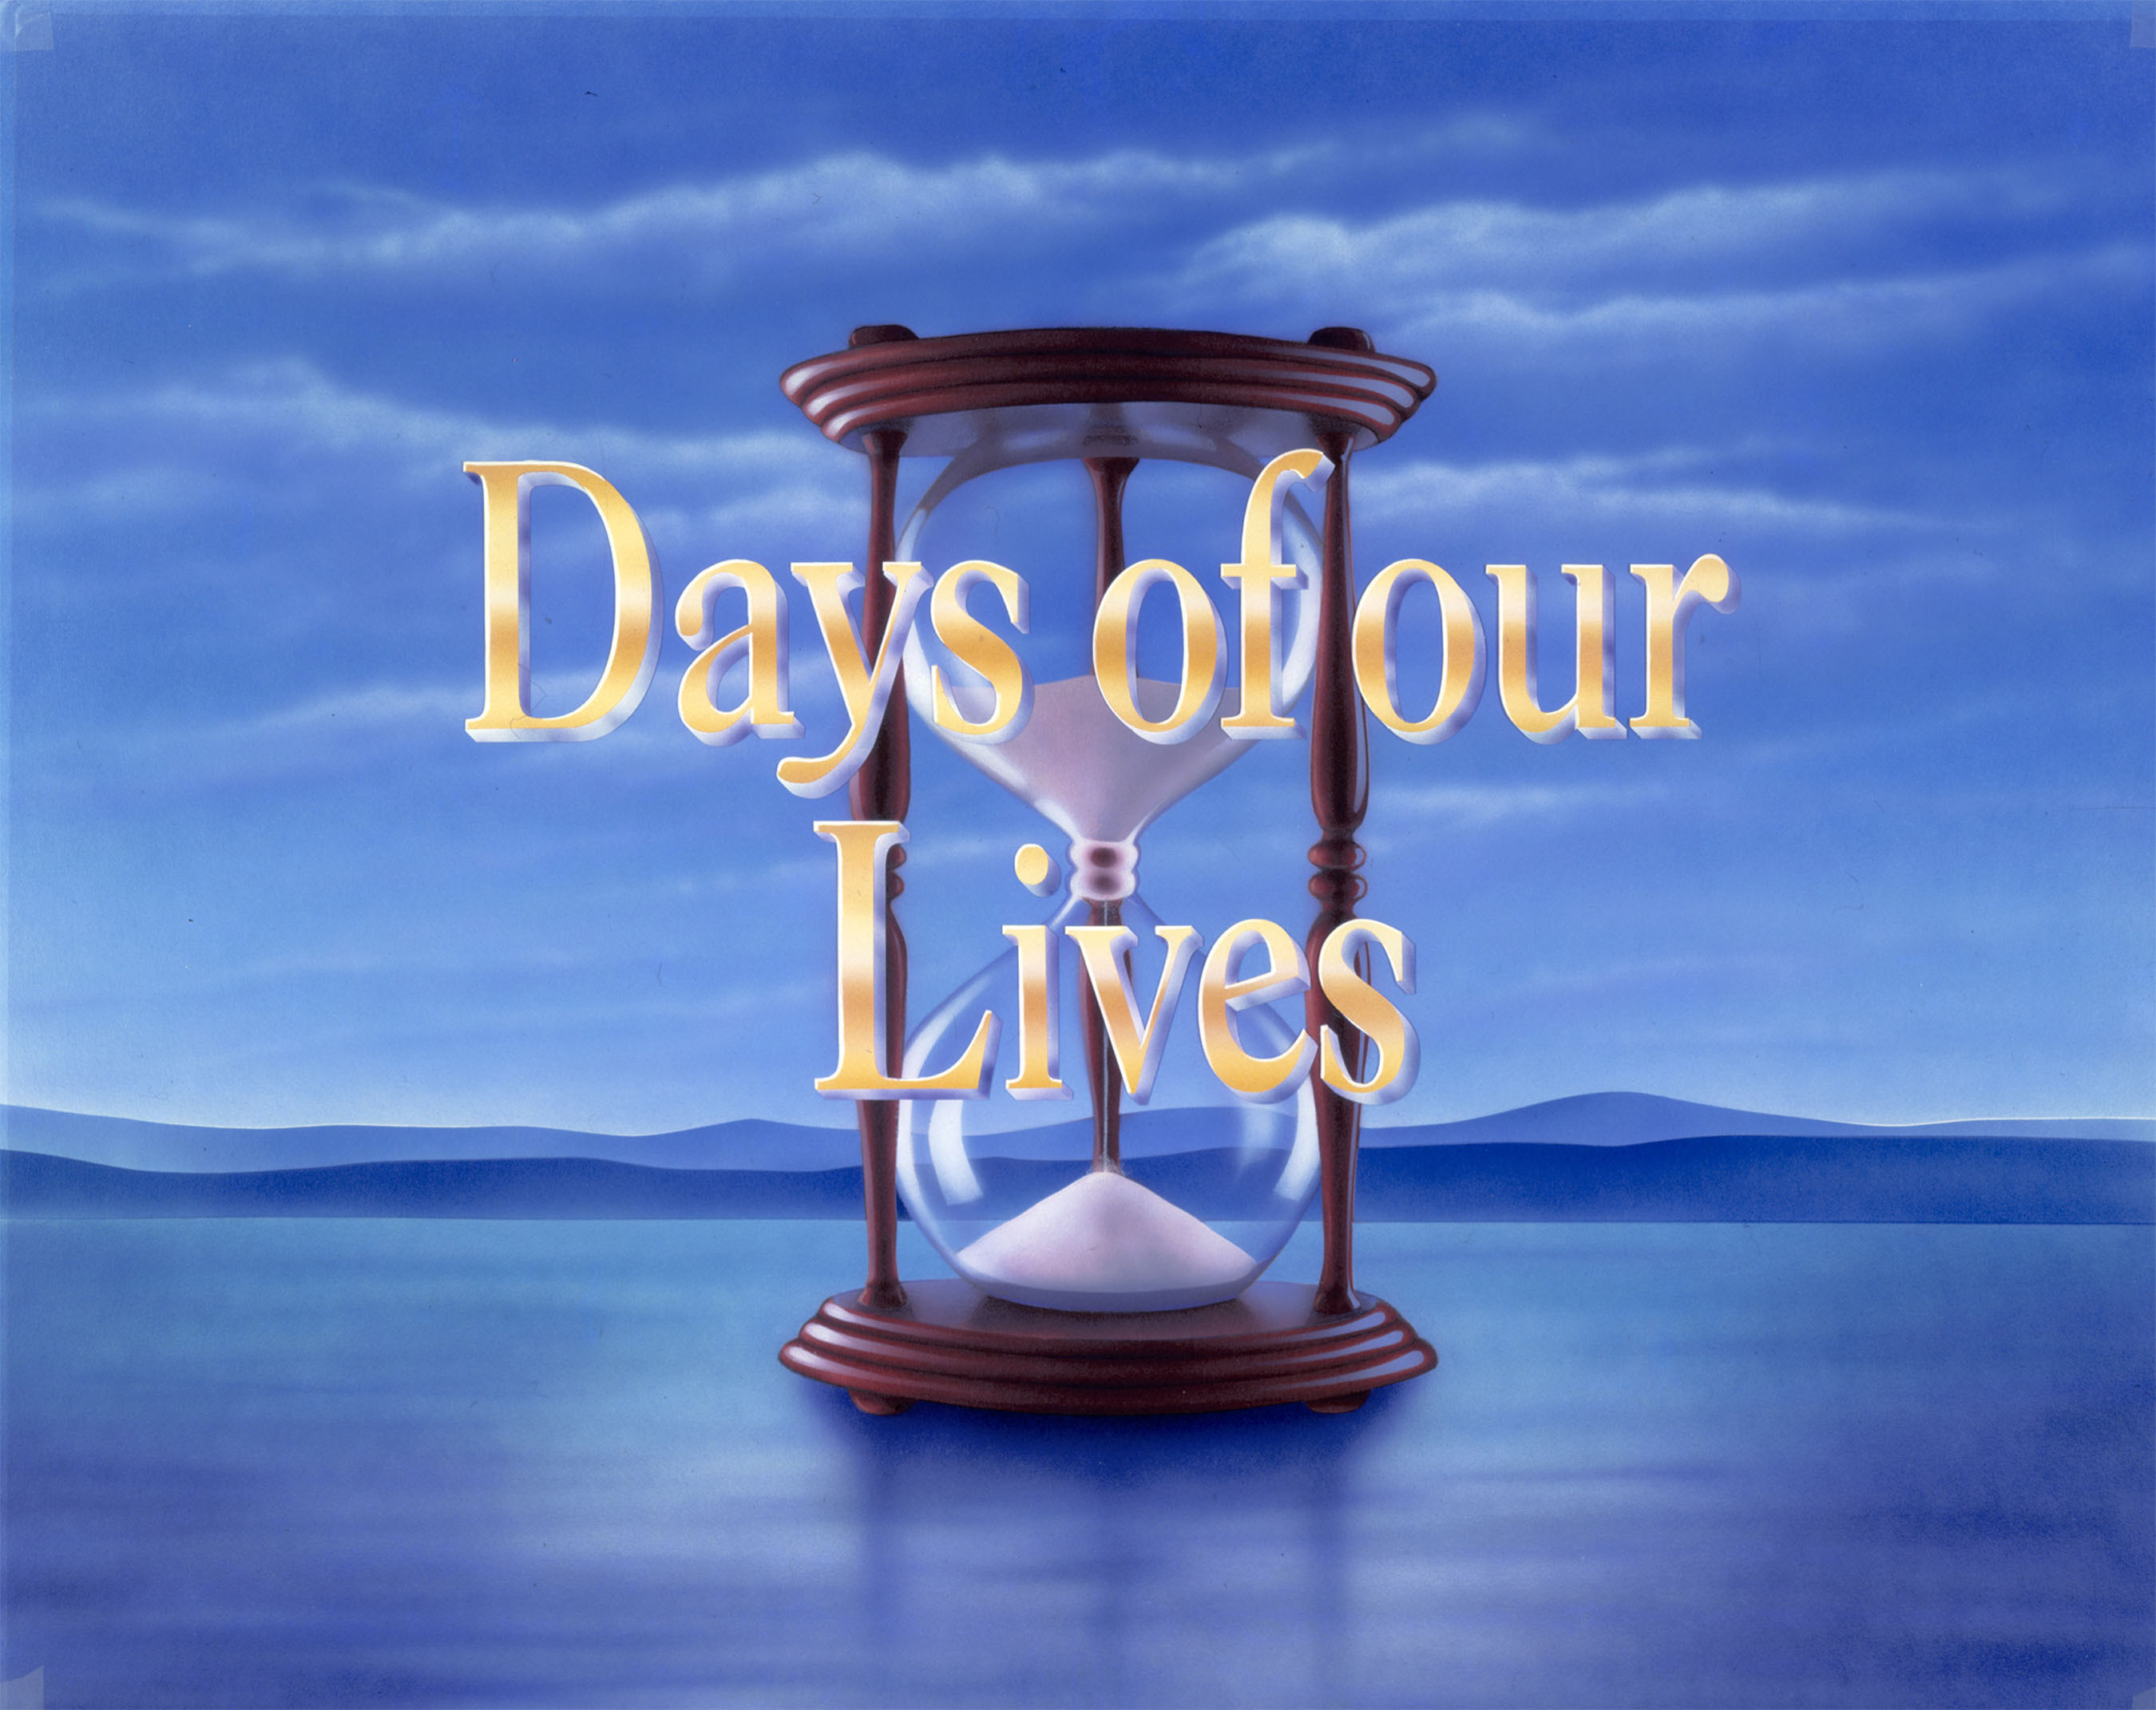 Days of our lives spoilers 81913